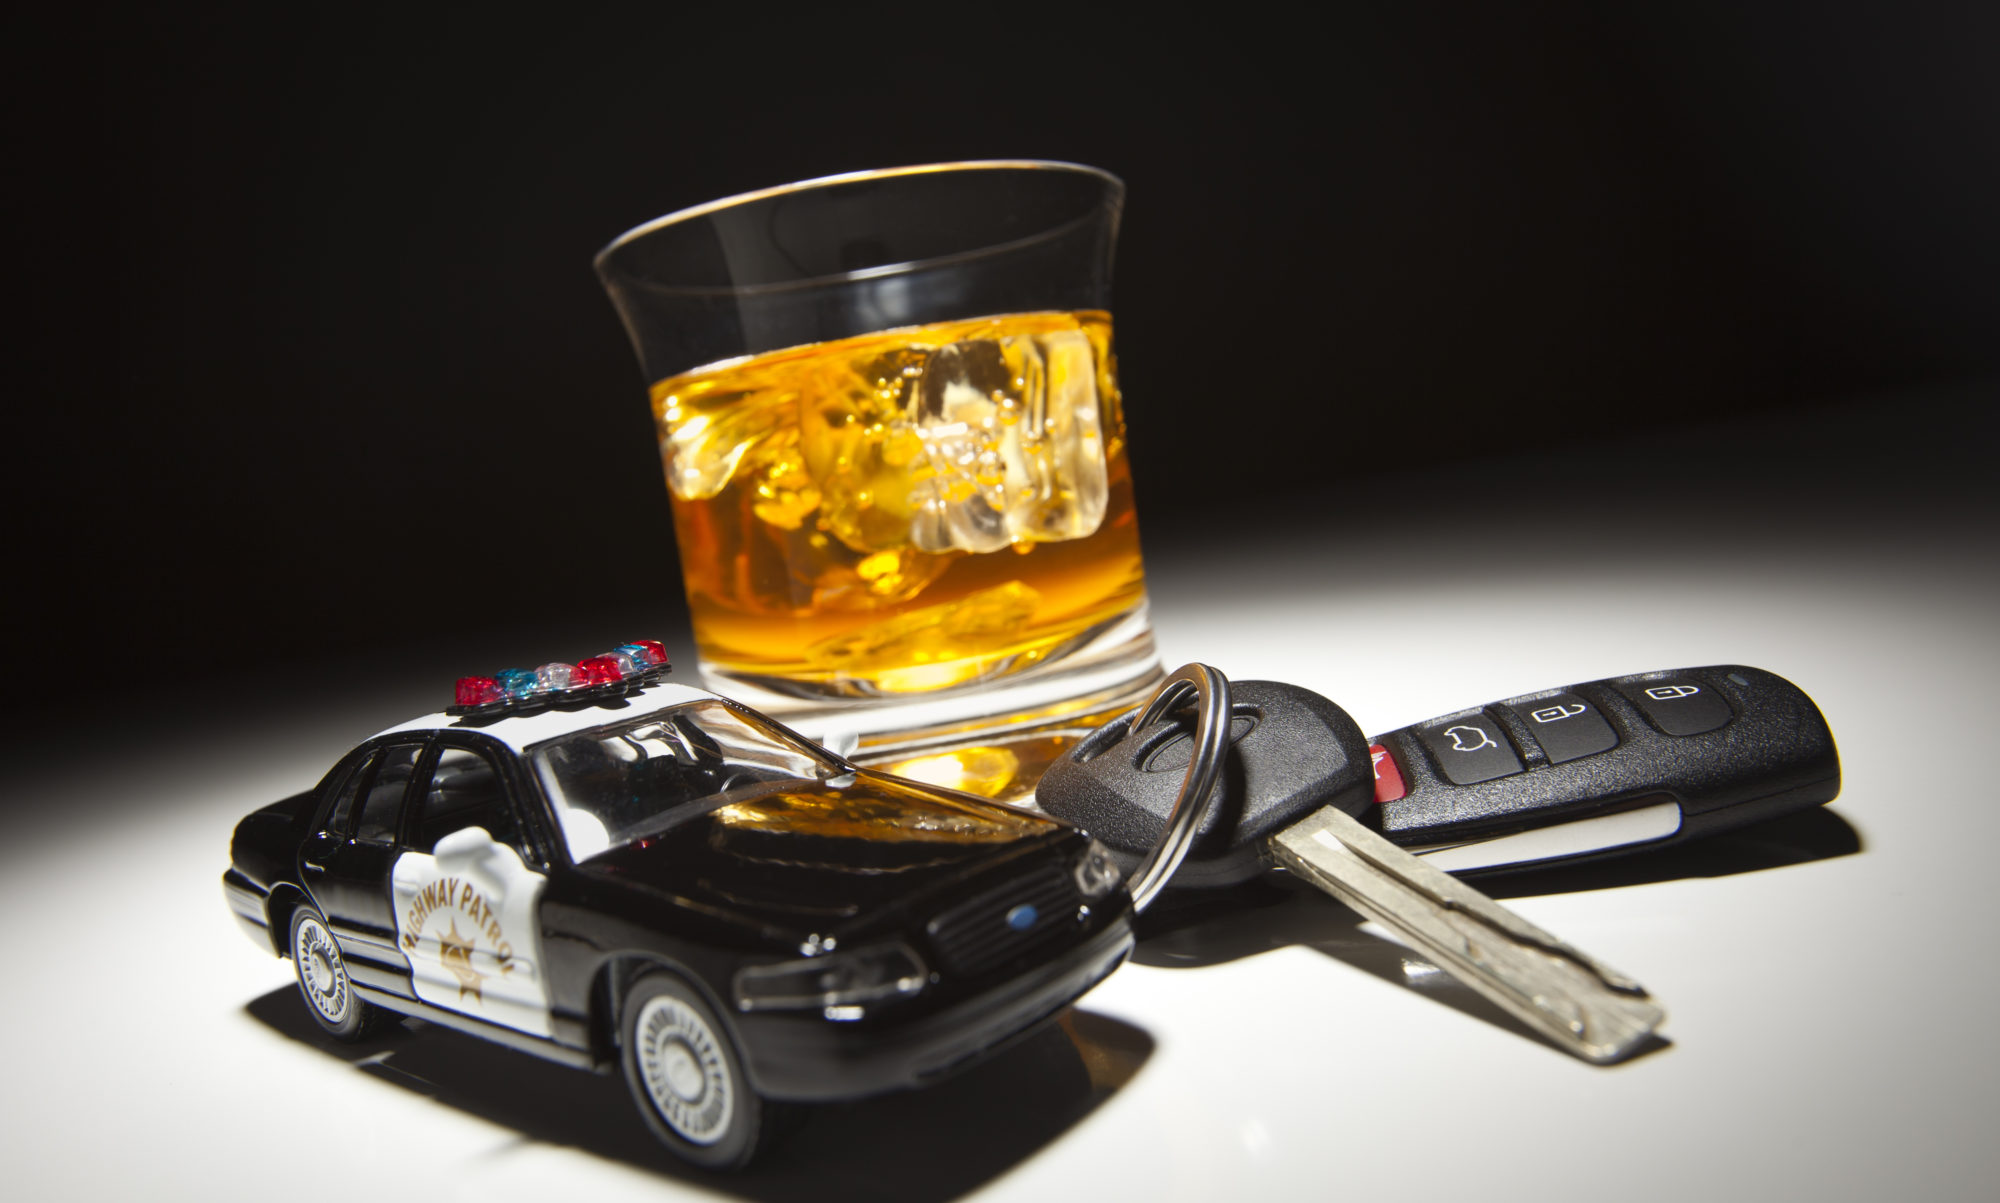 Dui & SR22 Insurance in California